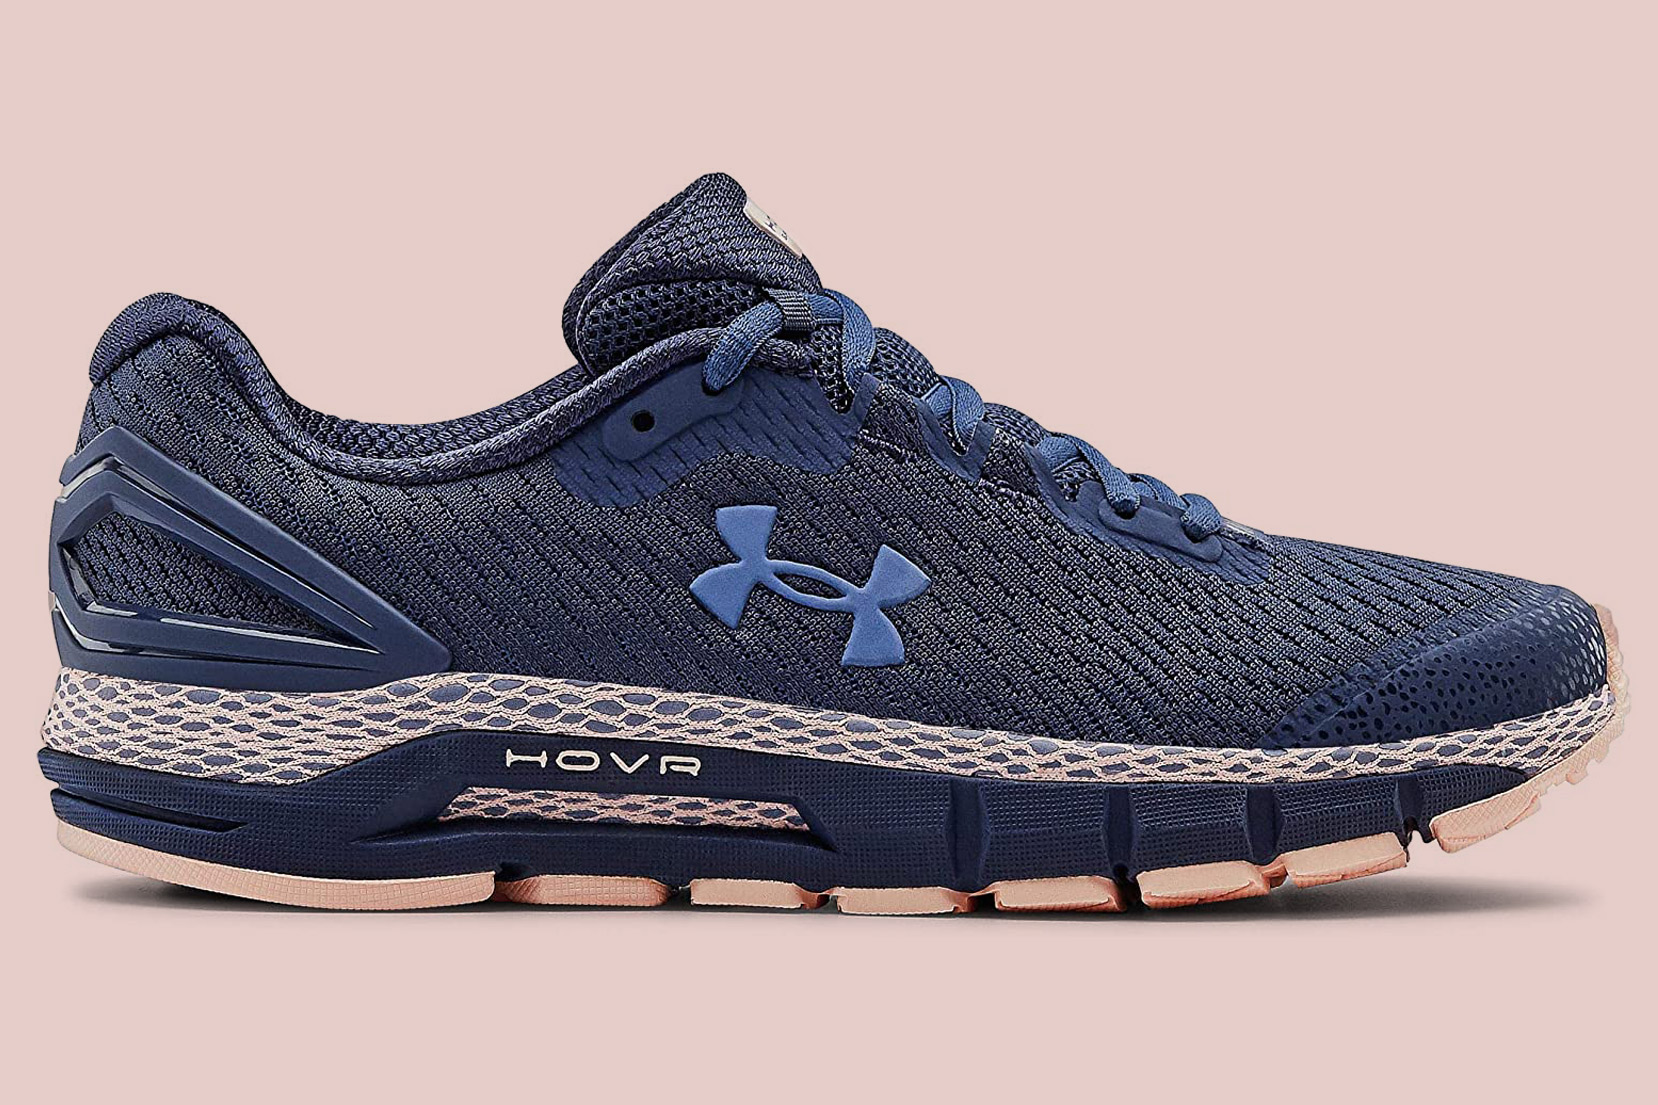 under armour hovr guadrian 2 running shoe